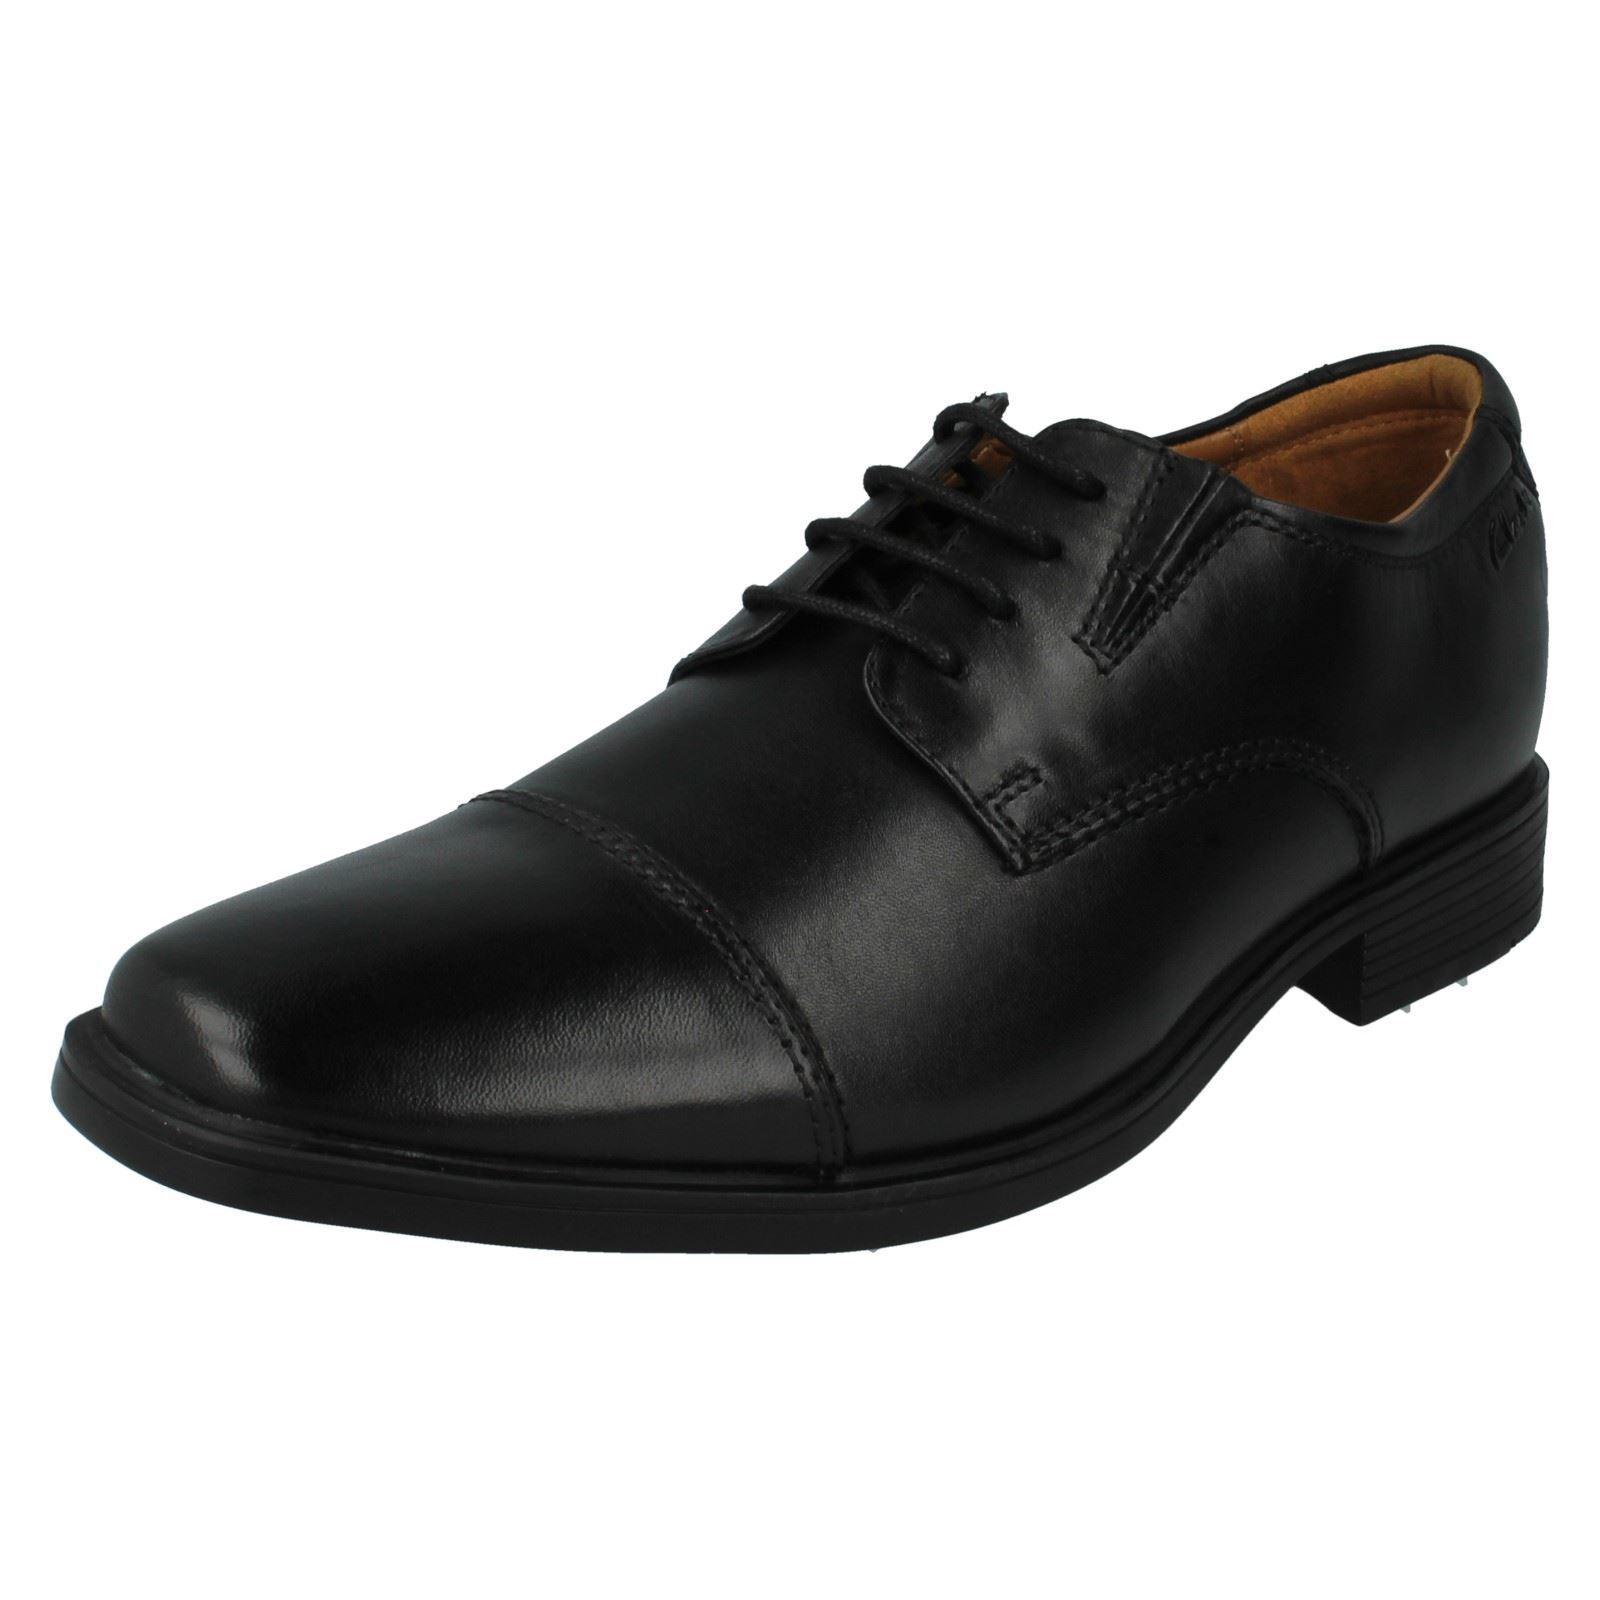 Mens TILDEN CAP Black leather lace up shoes by clarks retail £49.99